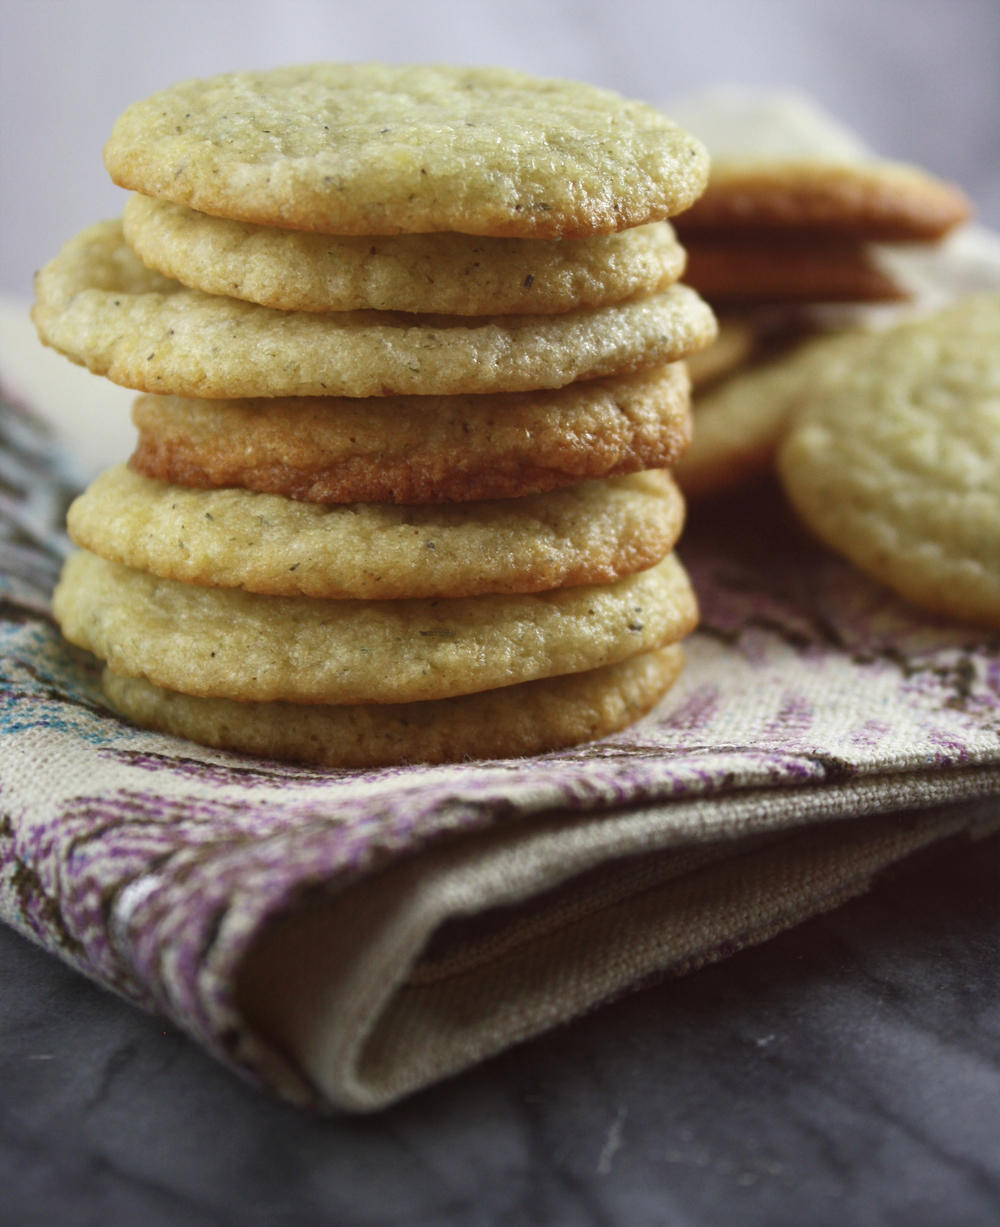 lavender cookies (only 70 calories)